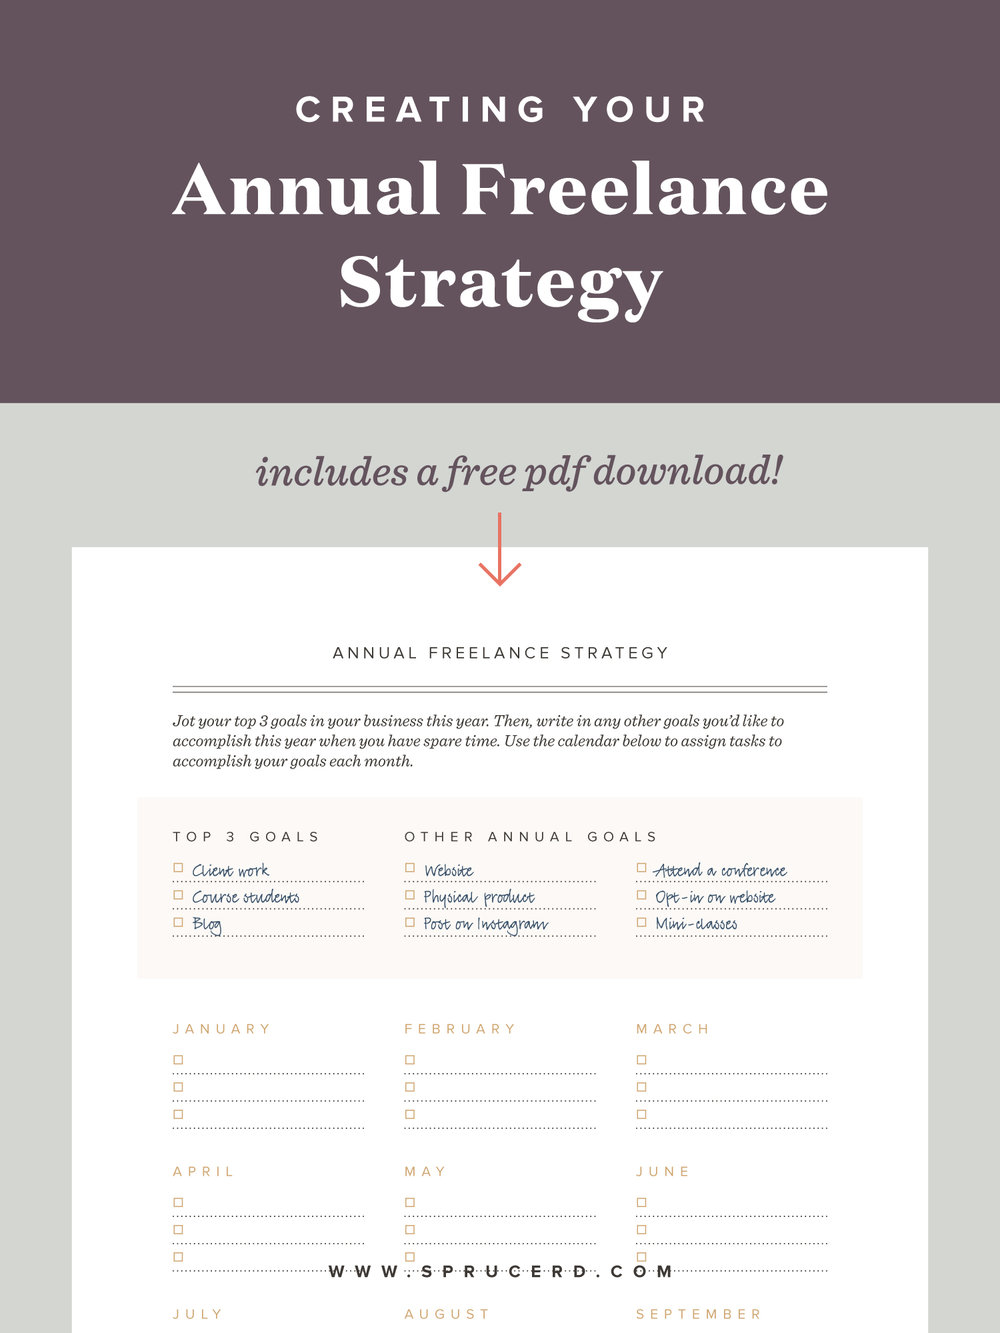 "Year-long freelance strategy | Spruce Rd. | Are you a chronic multitasker? I'll admit, I used to take pride in my ability to ""multi-task,"" until I recognized its downfall. Now I have an iron-clad plan to creating an annual freelance strategy that works. Download the PDF to follow along, and we'll establish your year-long freelance strategy in no time."